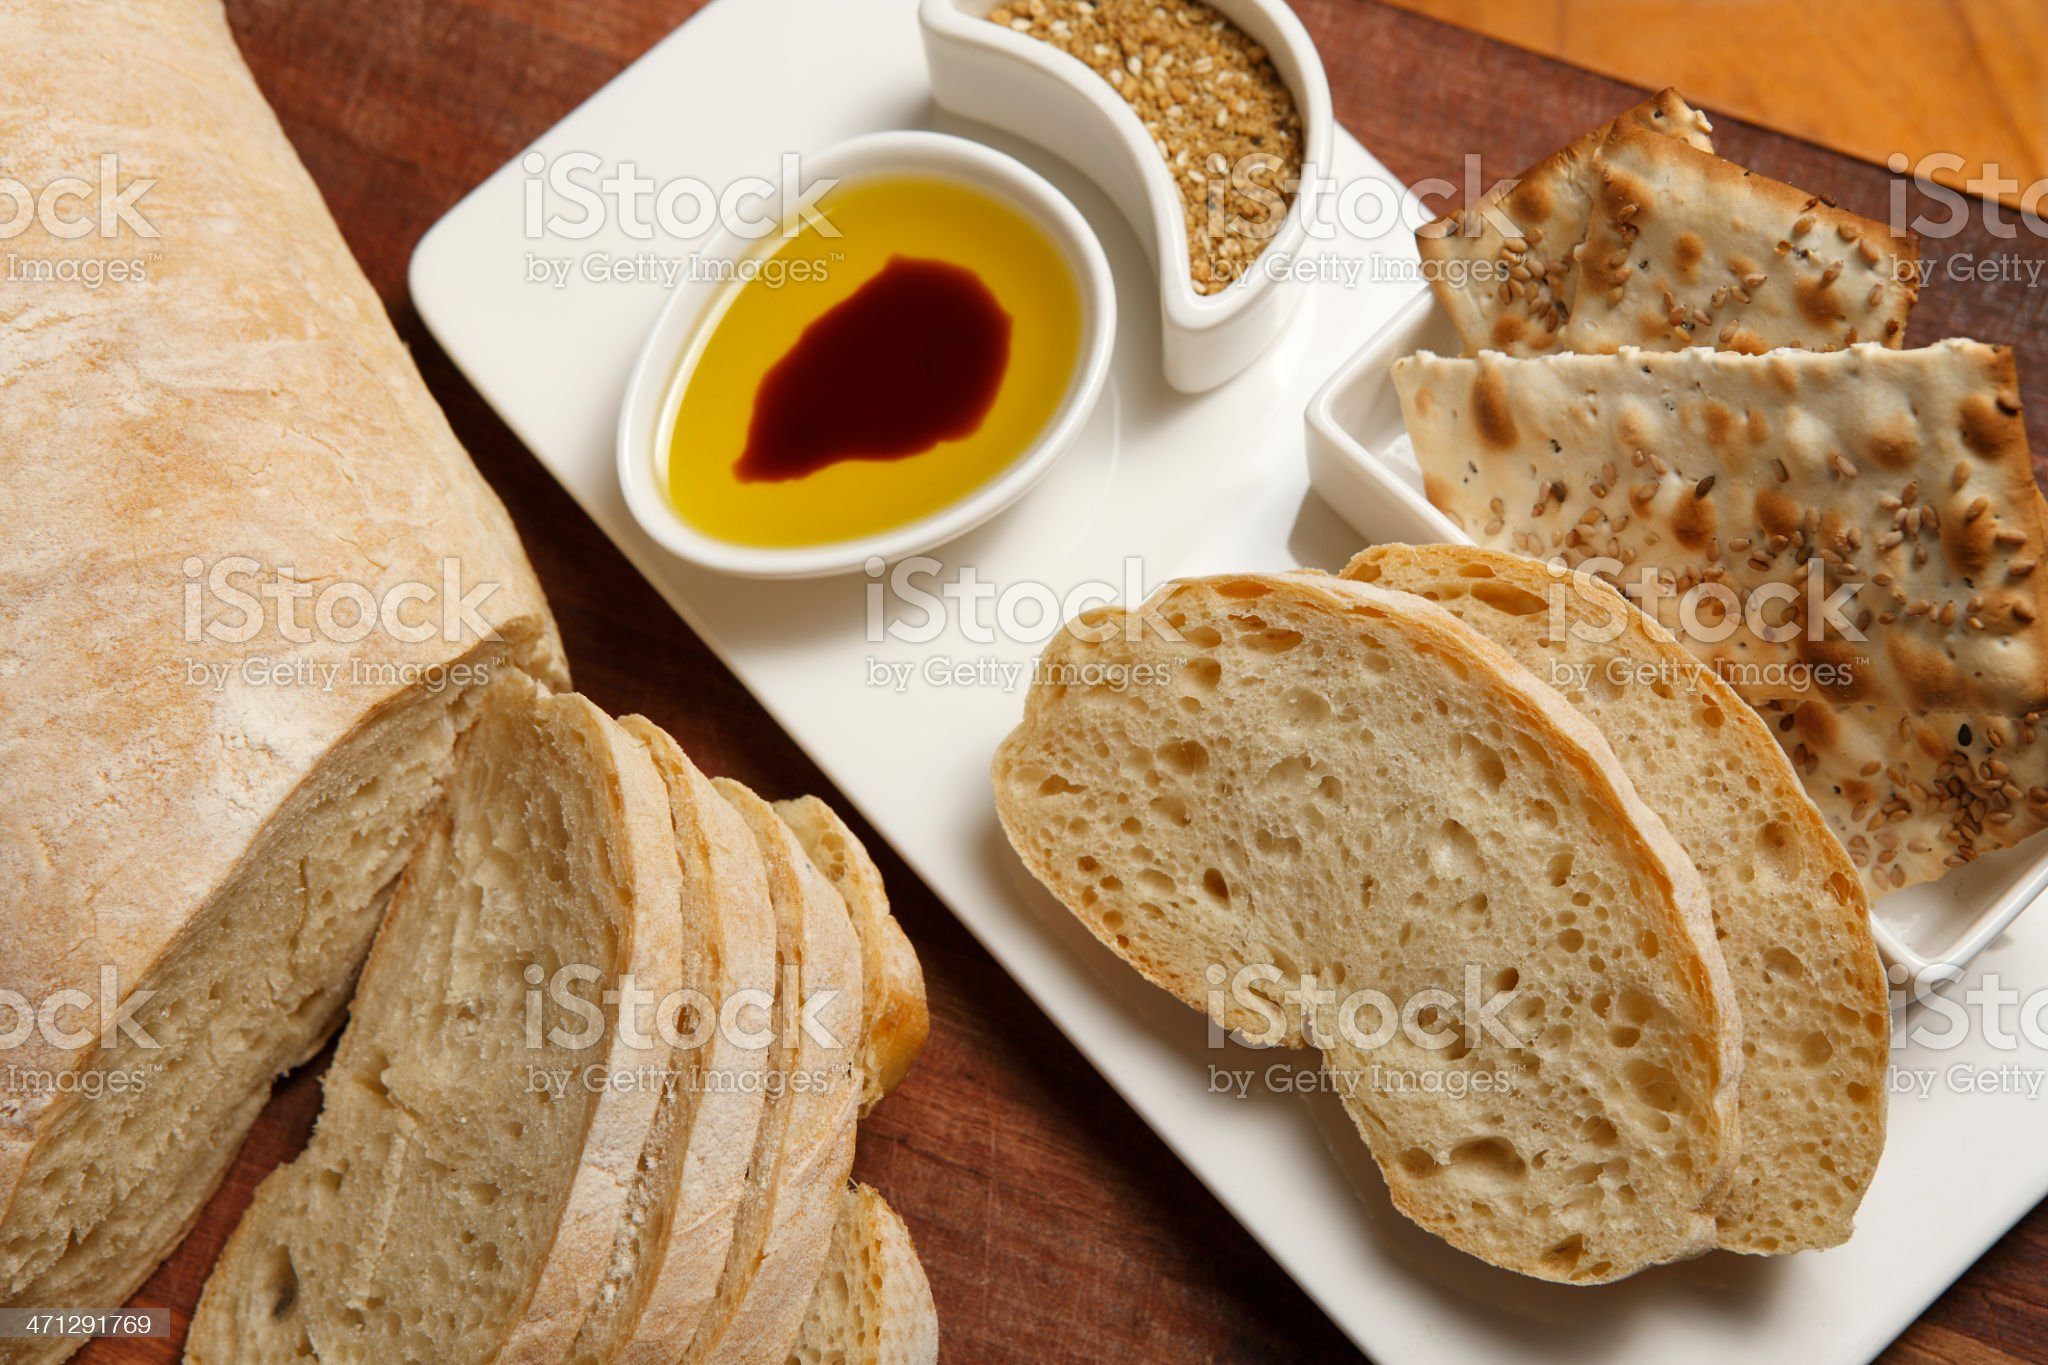 Sourdough bread, dips and crackers royalty-free stock photo